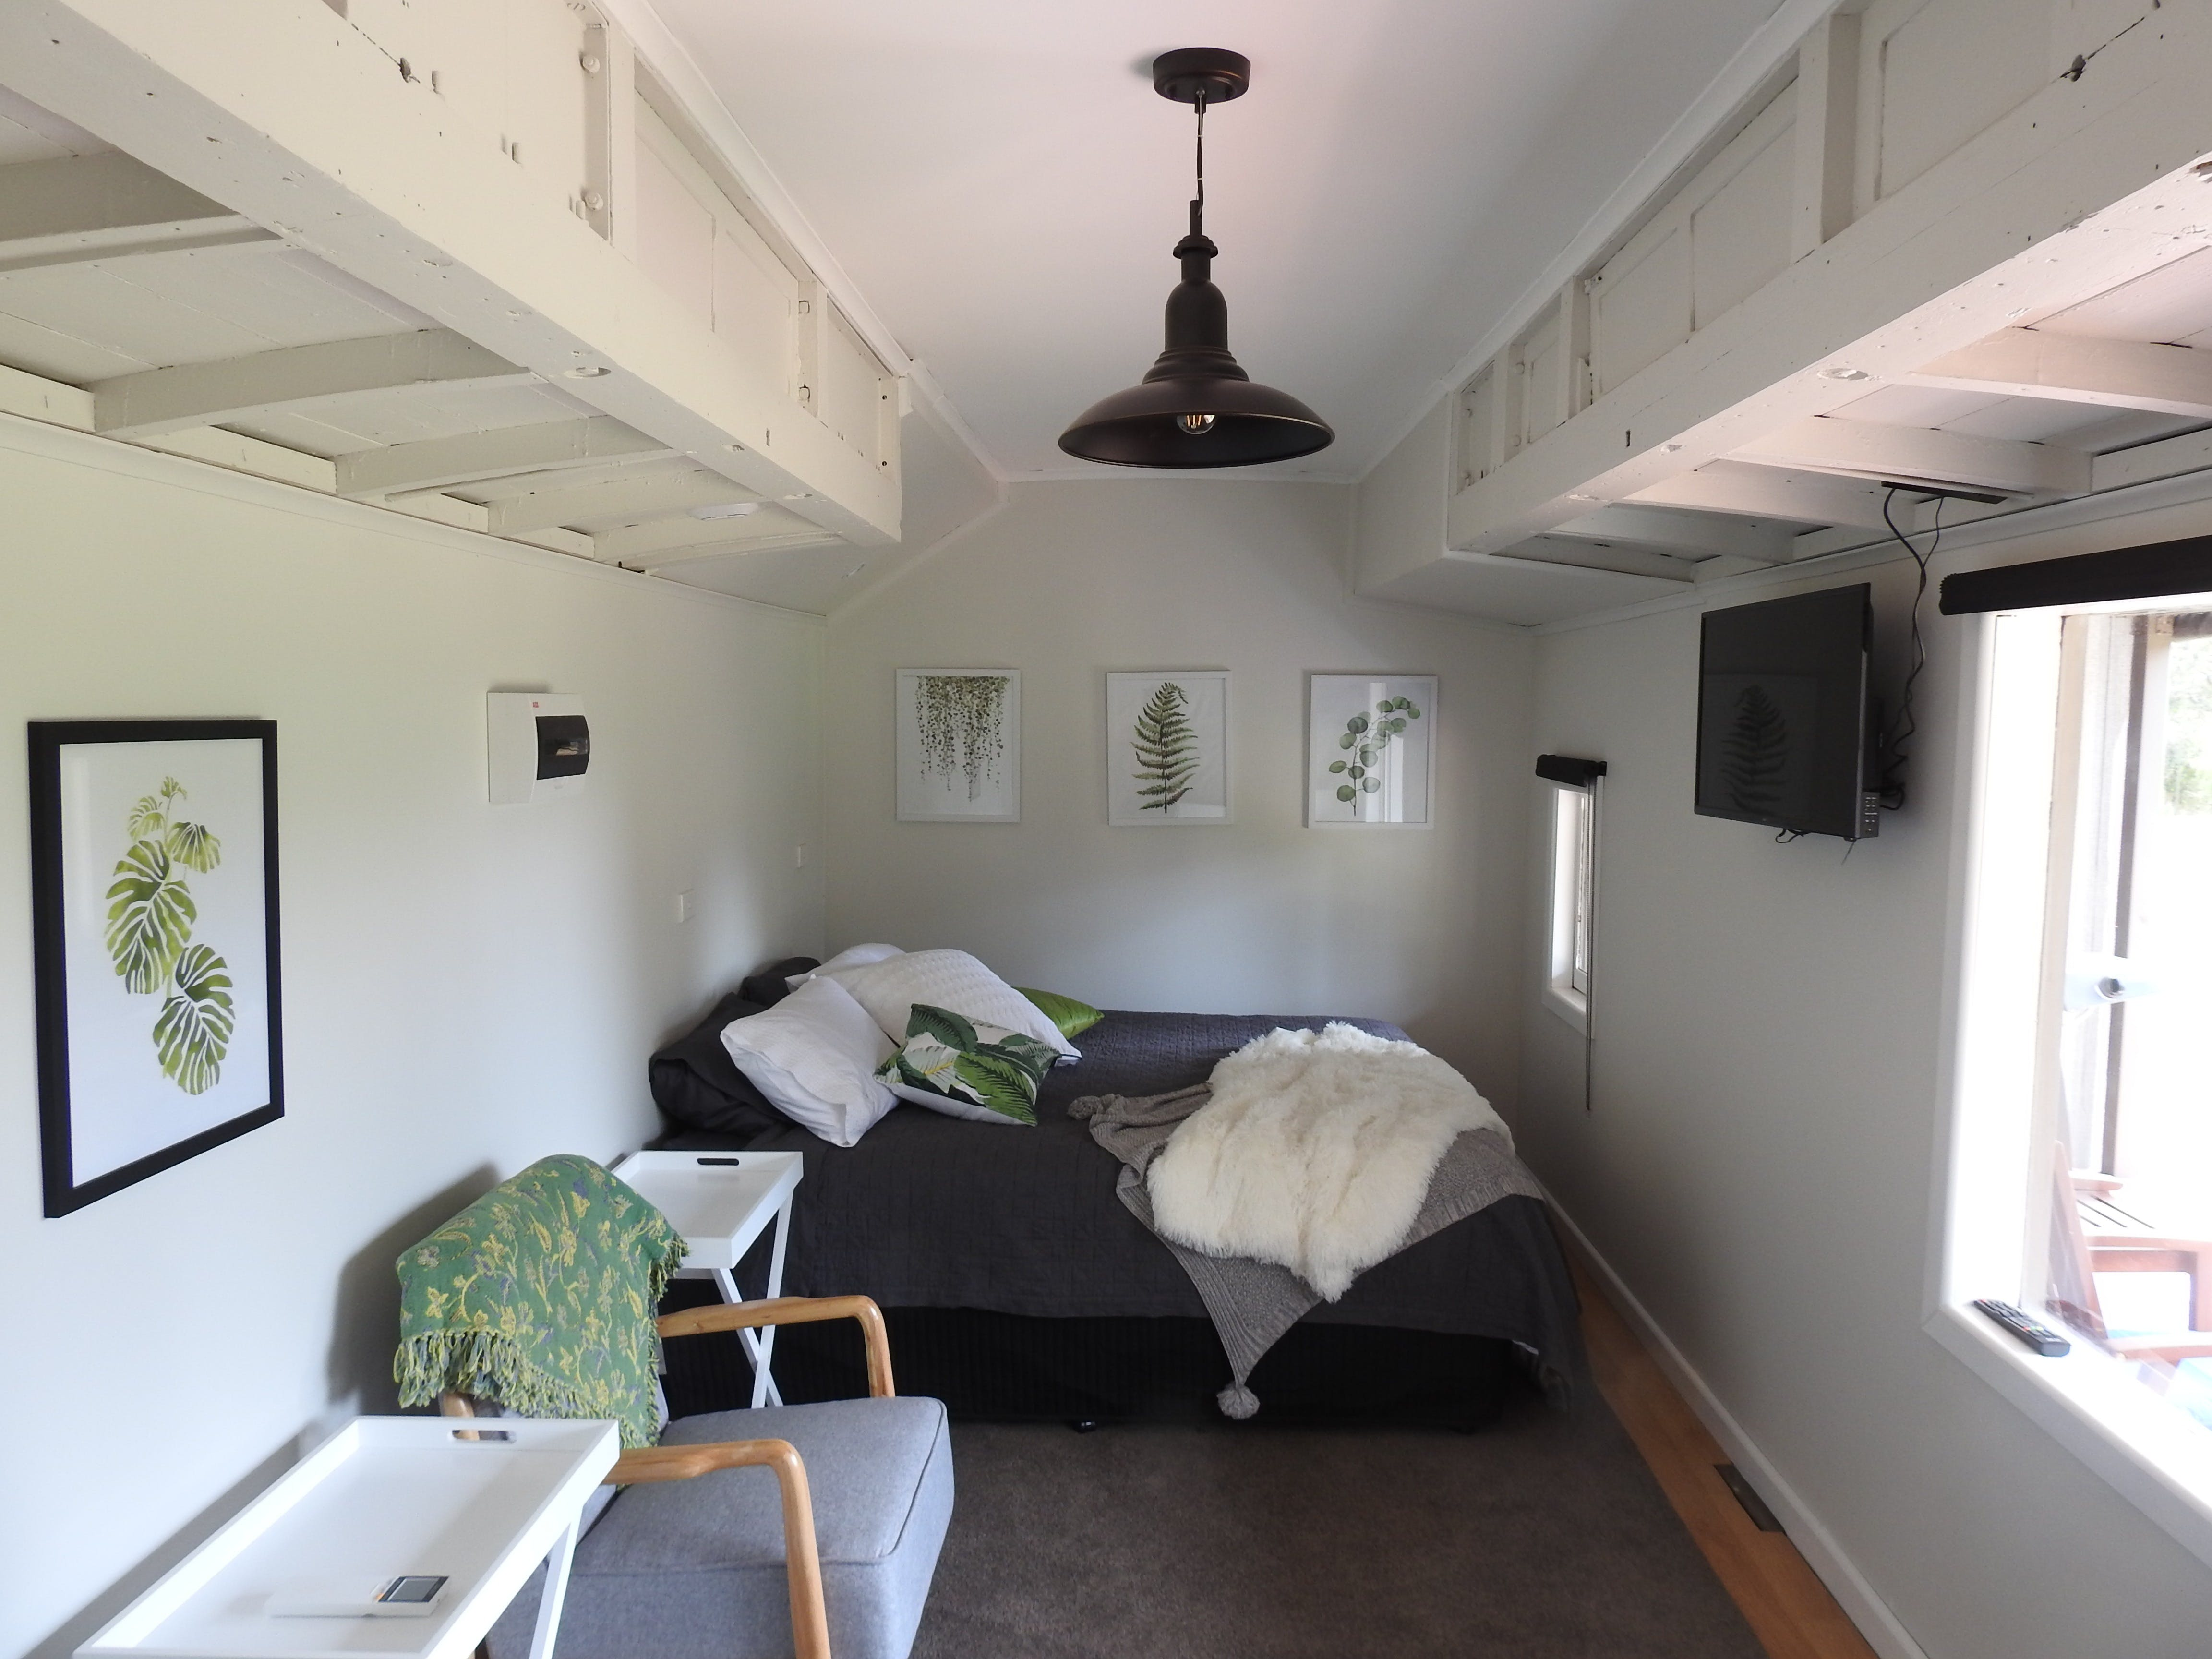 Miners Ridge Vineyard Railway Carriage BB - Accommodation Airlie Beach